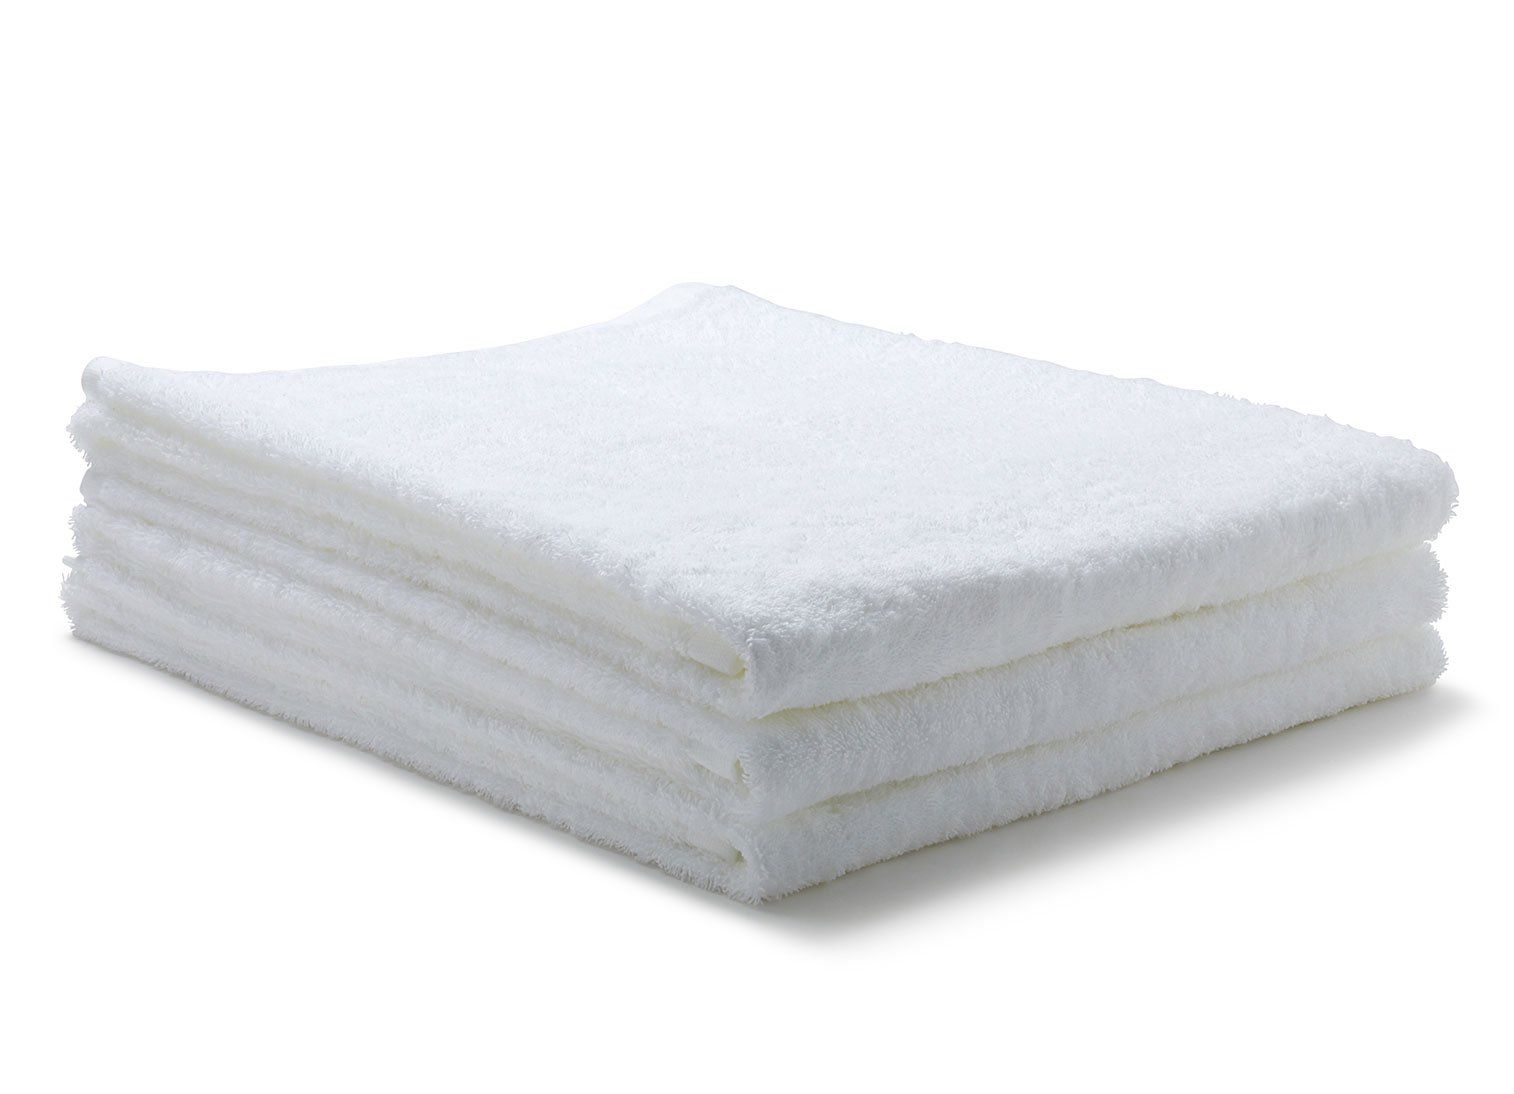 Soft Bath Towels By Wholesale Clothing On Towels Towel Cotton